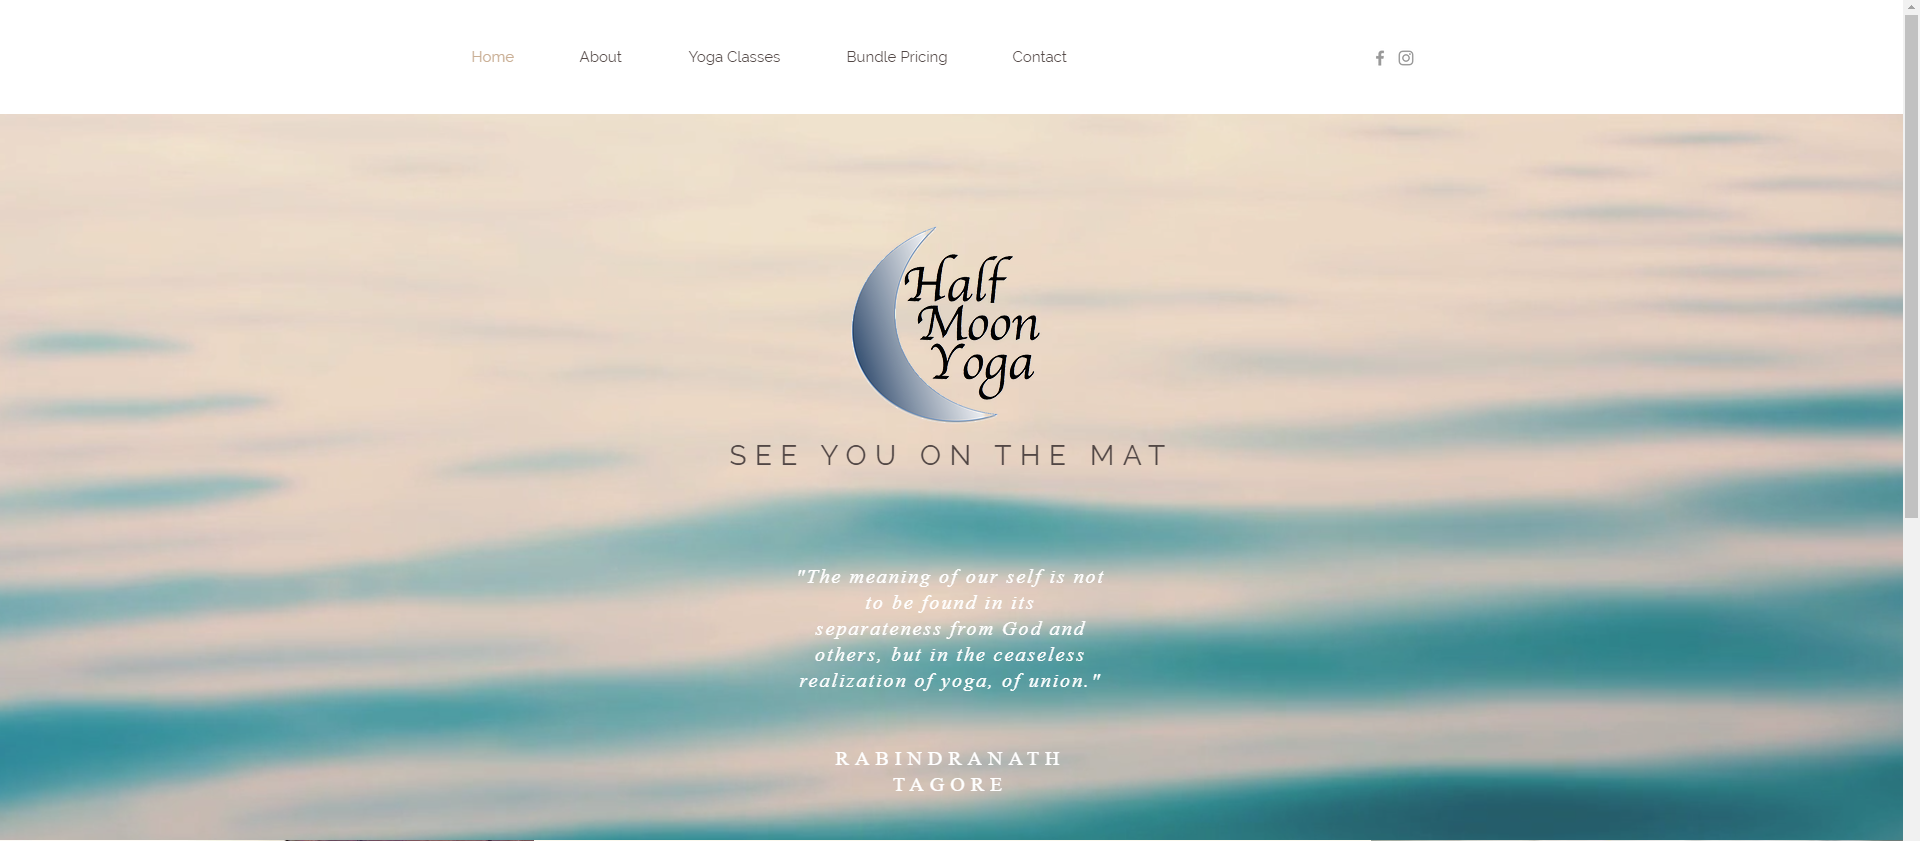 Half Moon Yoga, LLC.